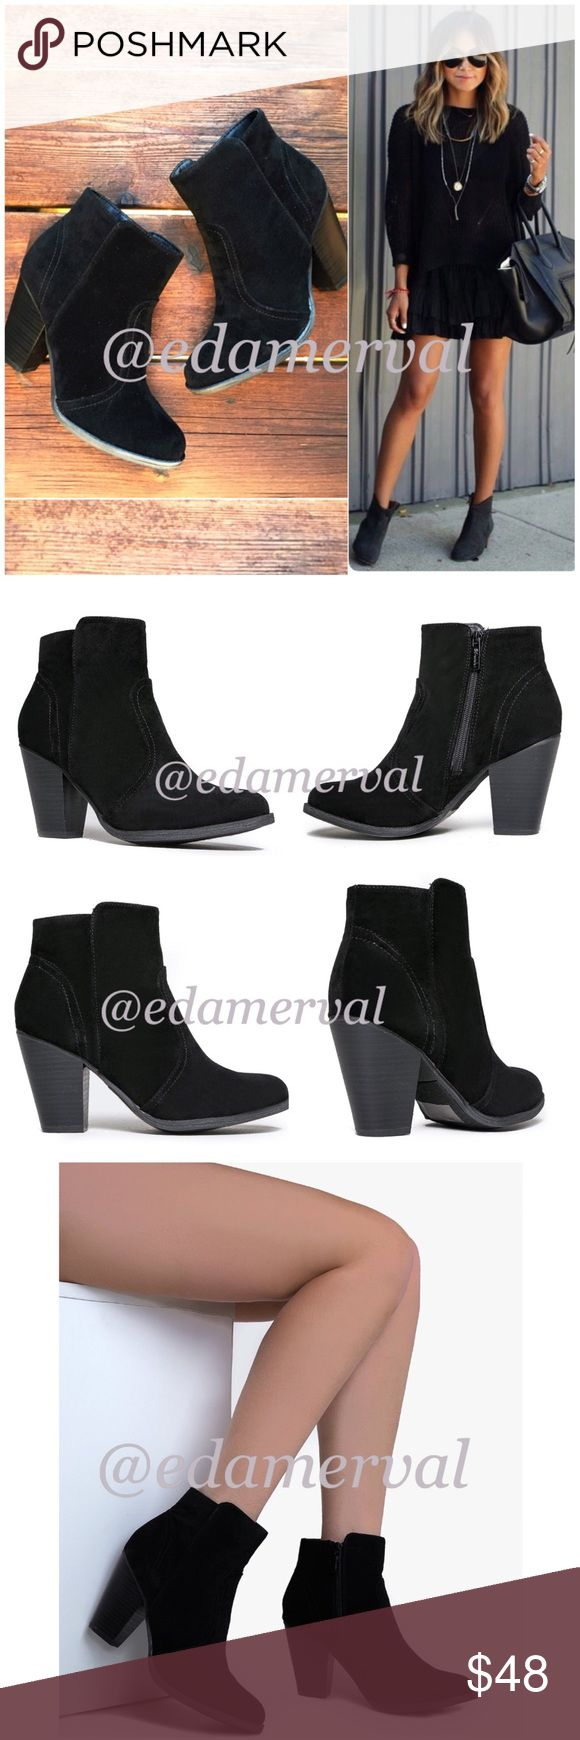 """LISTING! NIB Black Ankle Booties NIB Black Ankle Booties. Pair these beautiful booties with skinnies or a dress -- such a beautiful color for fall and winter! Features a wooden-style heel, decorative black stitching, and inner ankle zipper closure. Non-skid sole, cushioned footbed. Heel is approx 3.5"""", shaft is 7.5"""" height, opening circumference approx 10.5"""". Fits true to size, vegan suede. No Trades and No Paypal PRICE IS FIRM, but can discount in a bundle. Shoes Ankle Boots & Booties"""